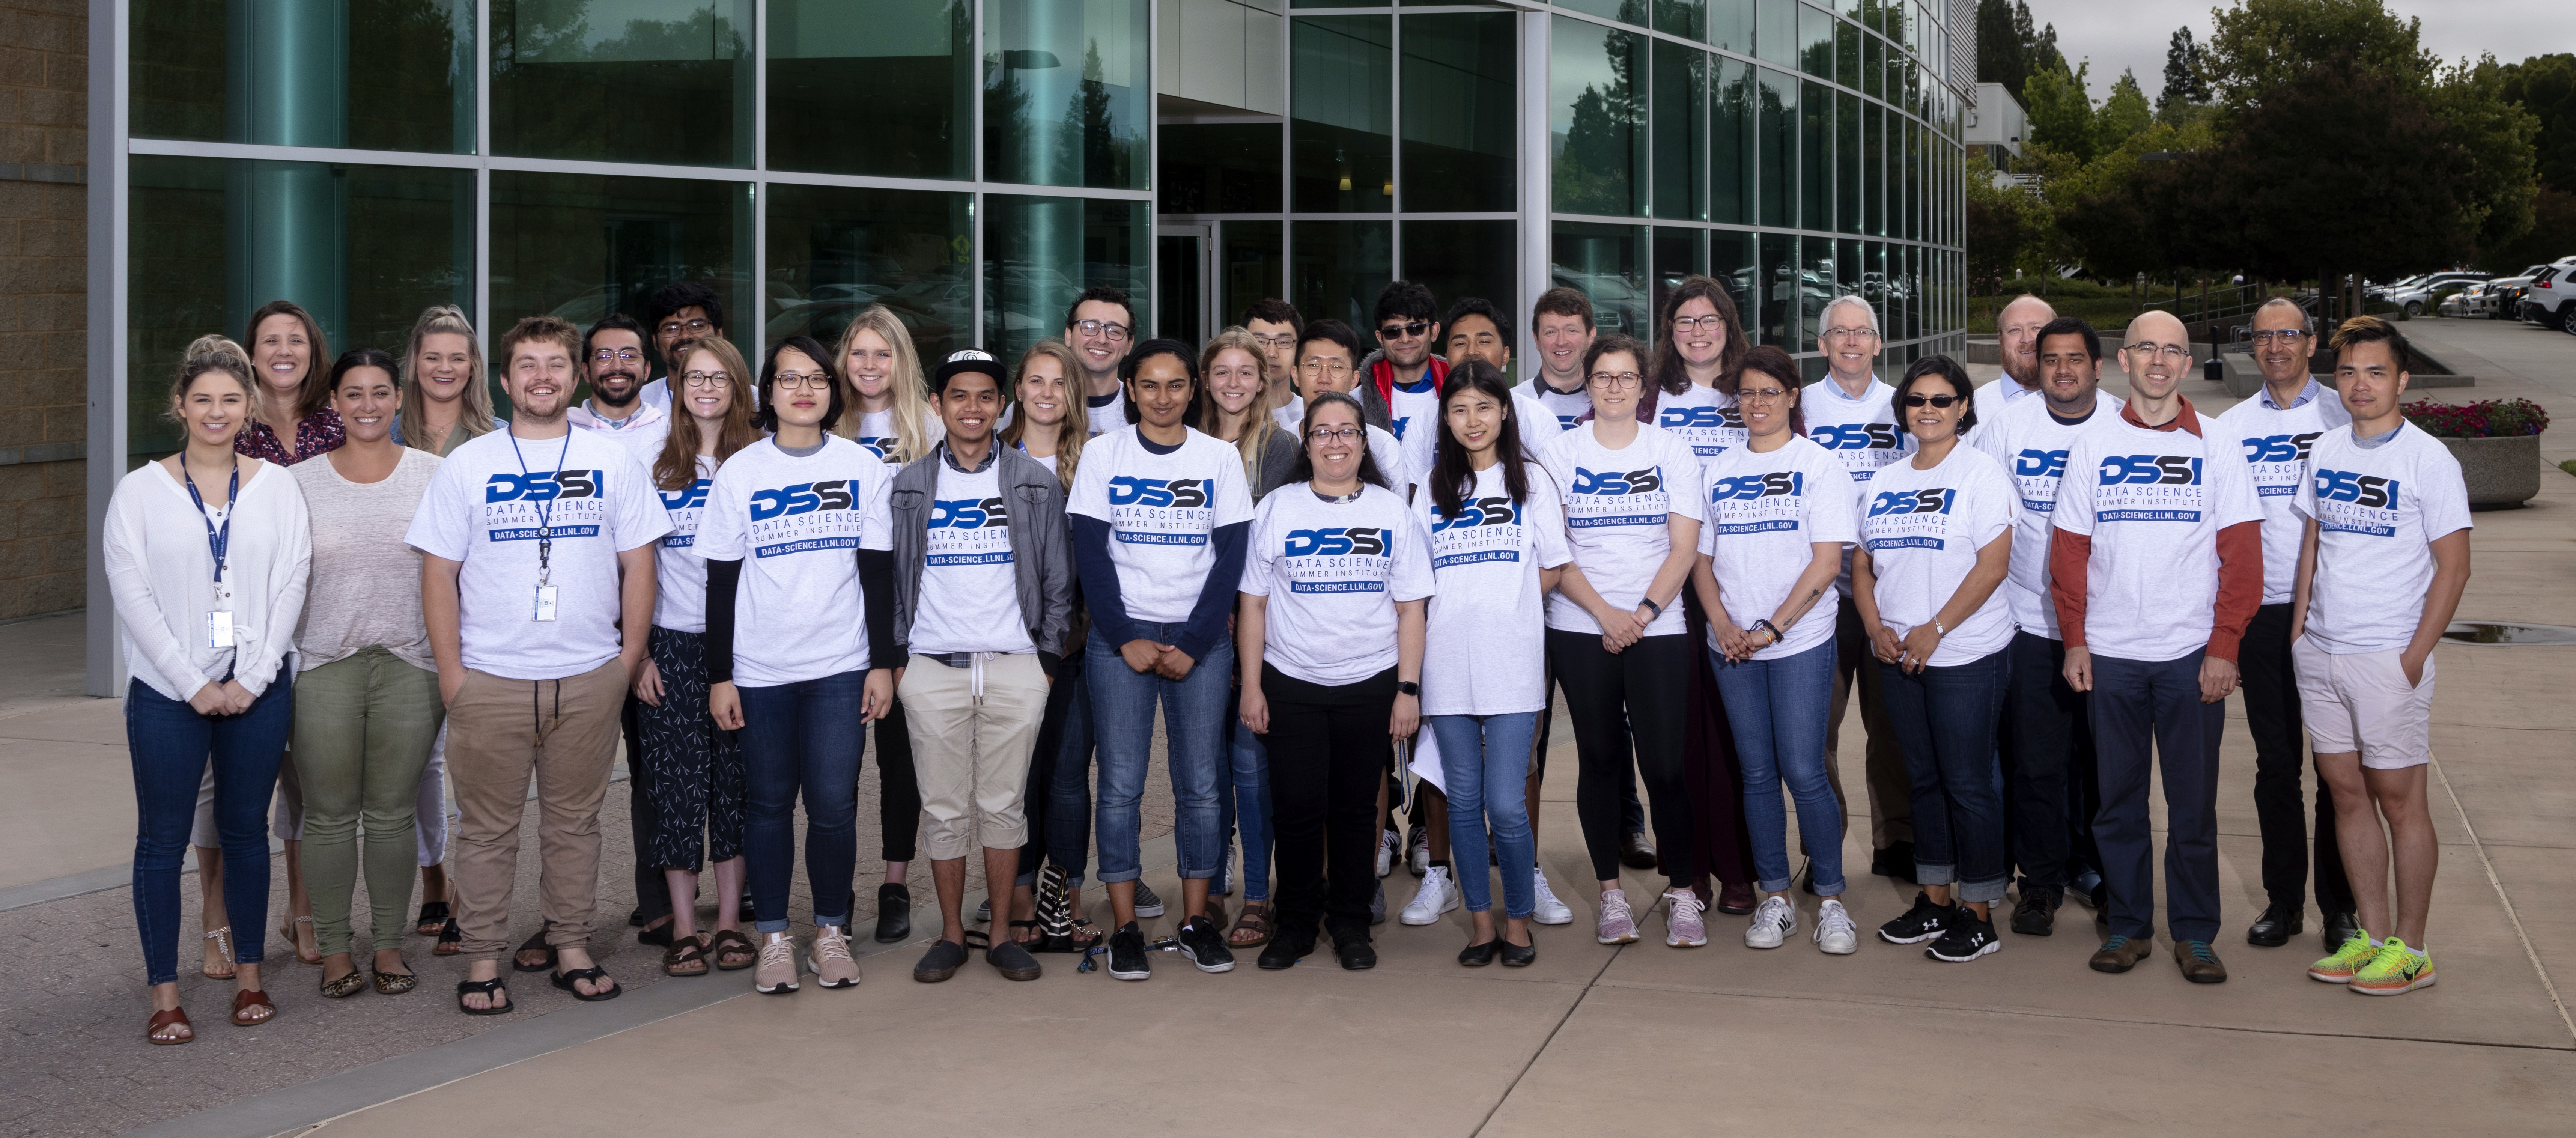 DSSI class of 2019 standing in a group outside the HPC building